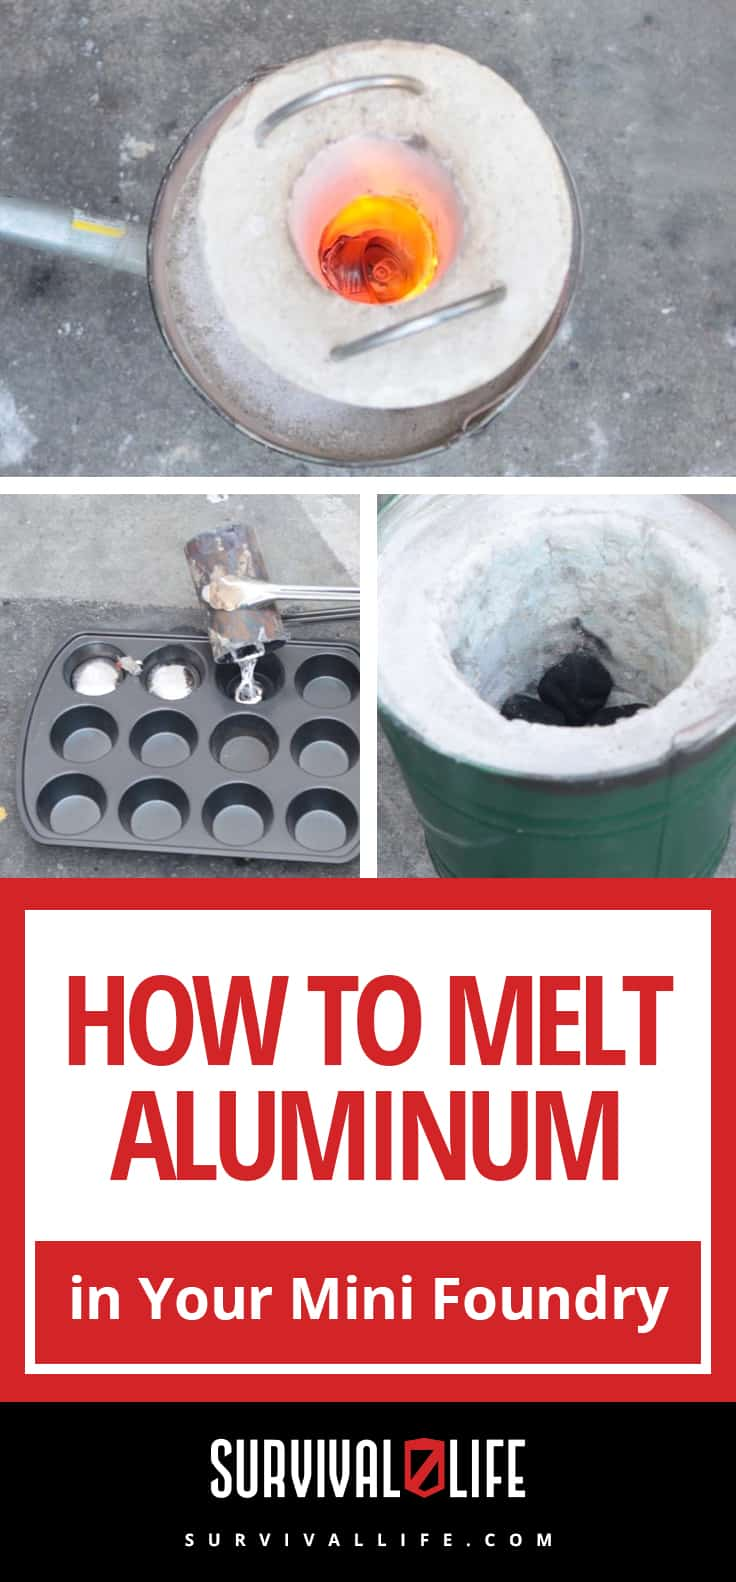 How to Melt Aluminum in Your Mini Foundry